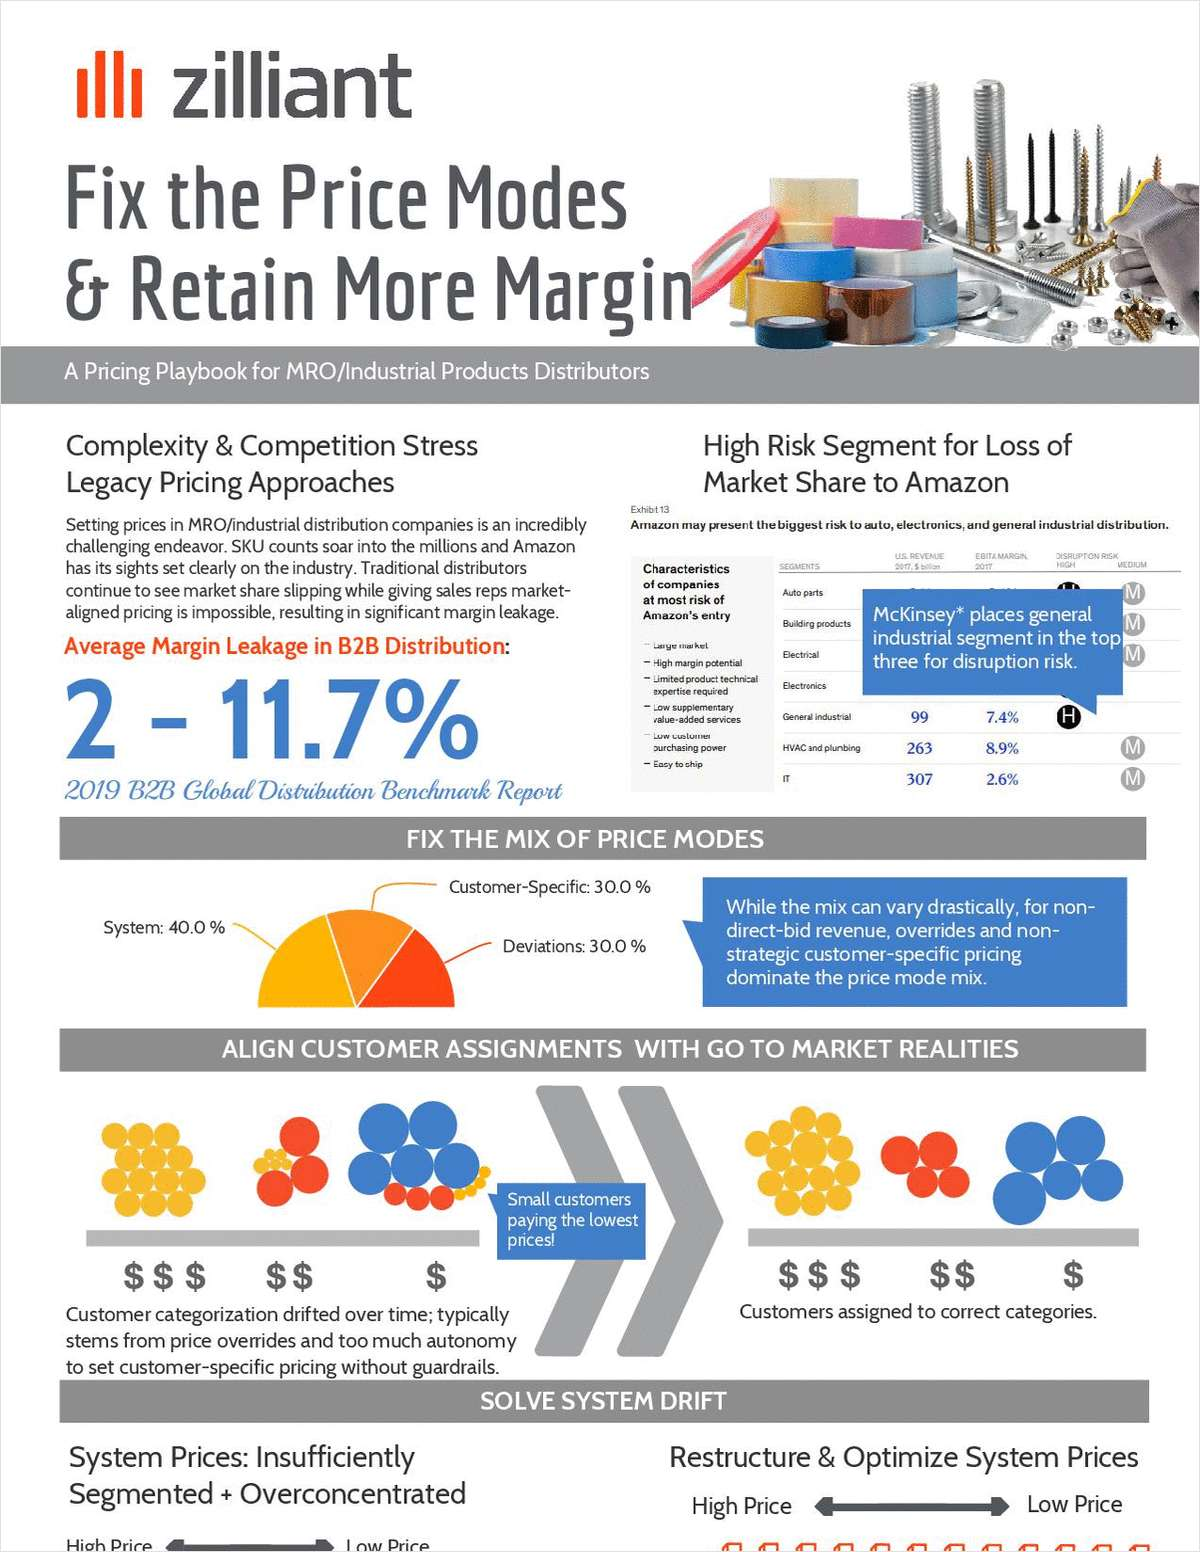 Fix the Price Modes to Retain More Margin in MRO/Industrial Distribution